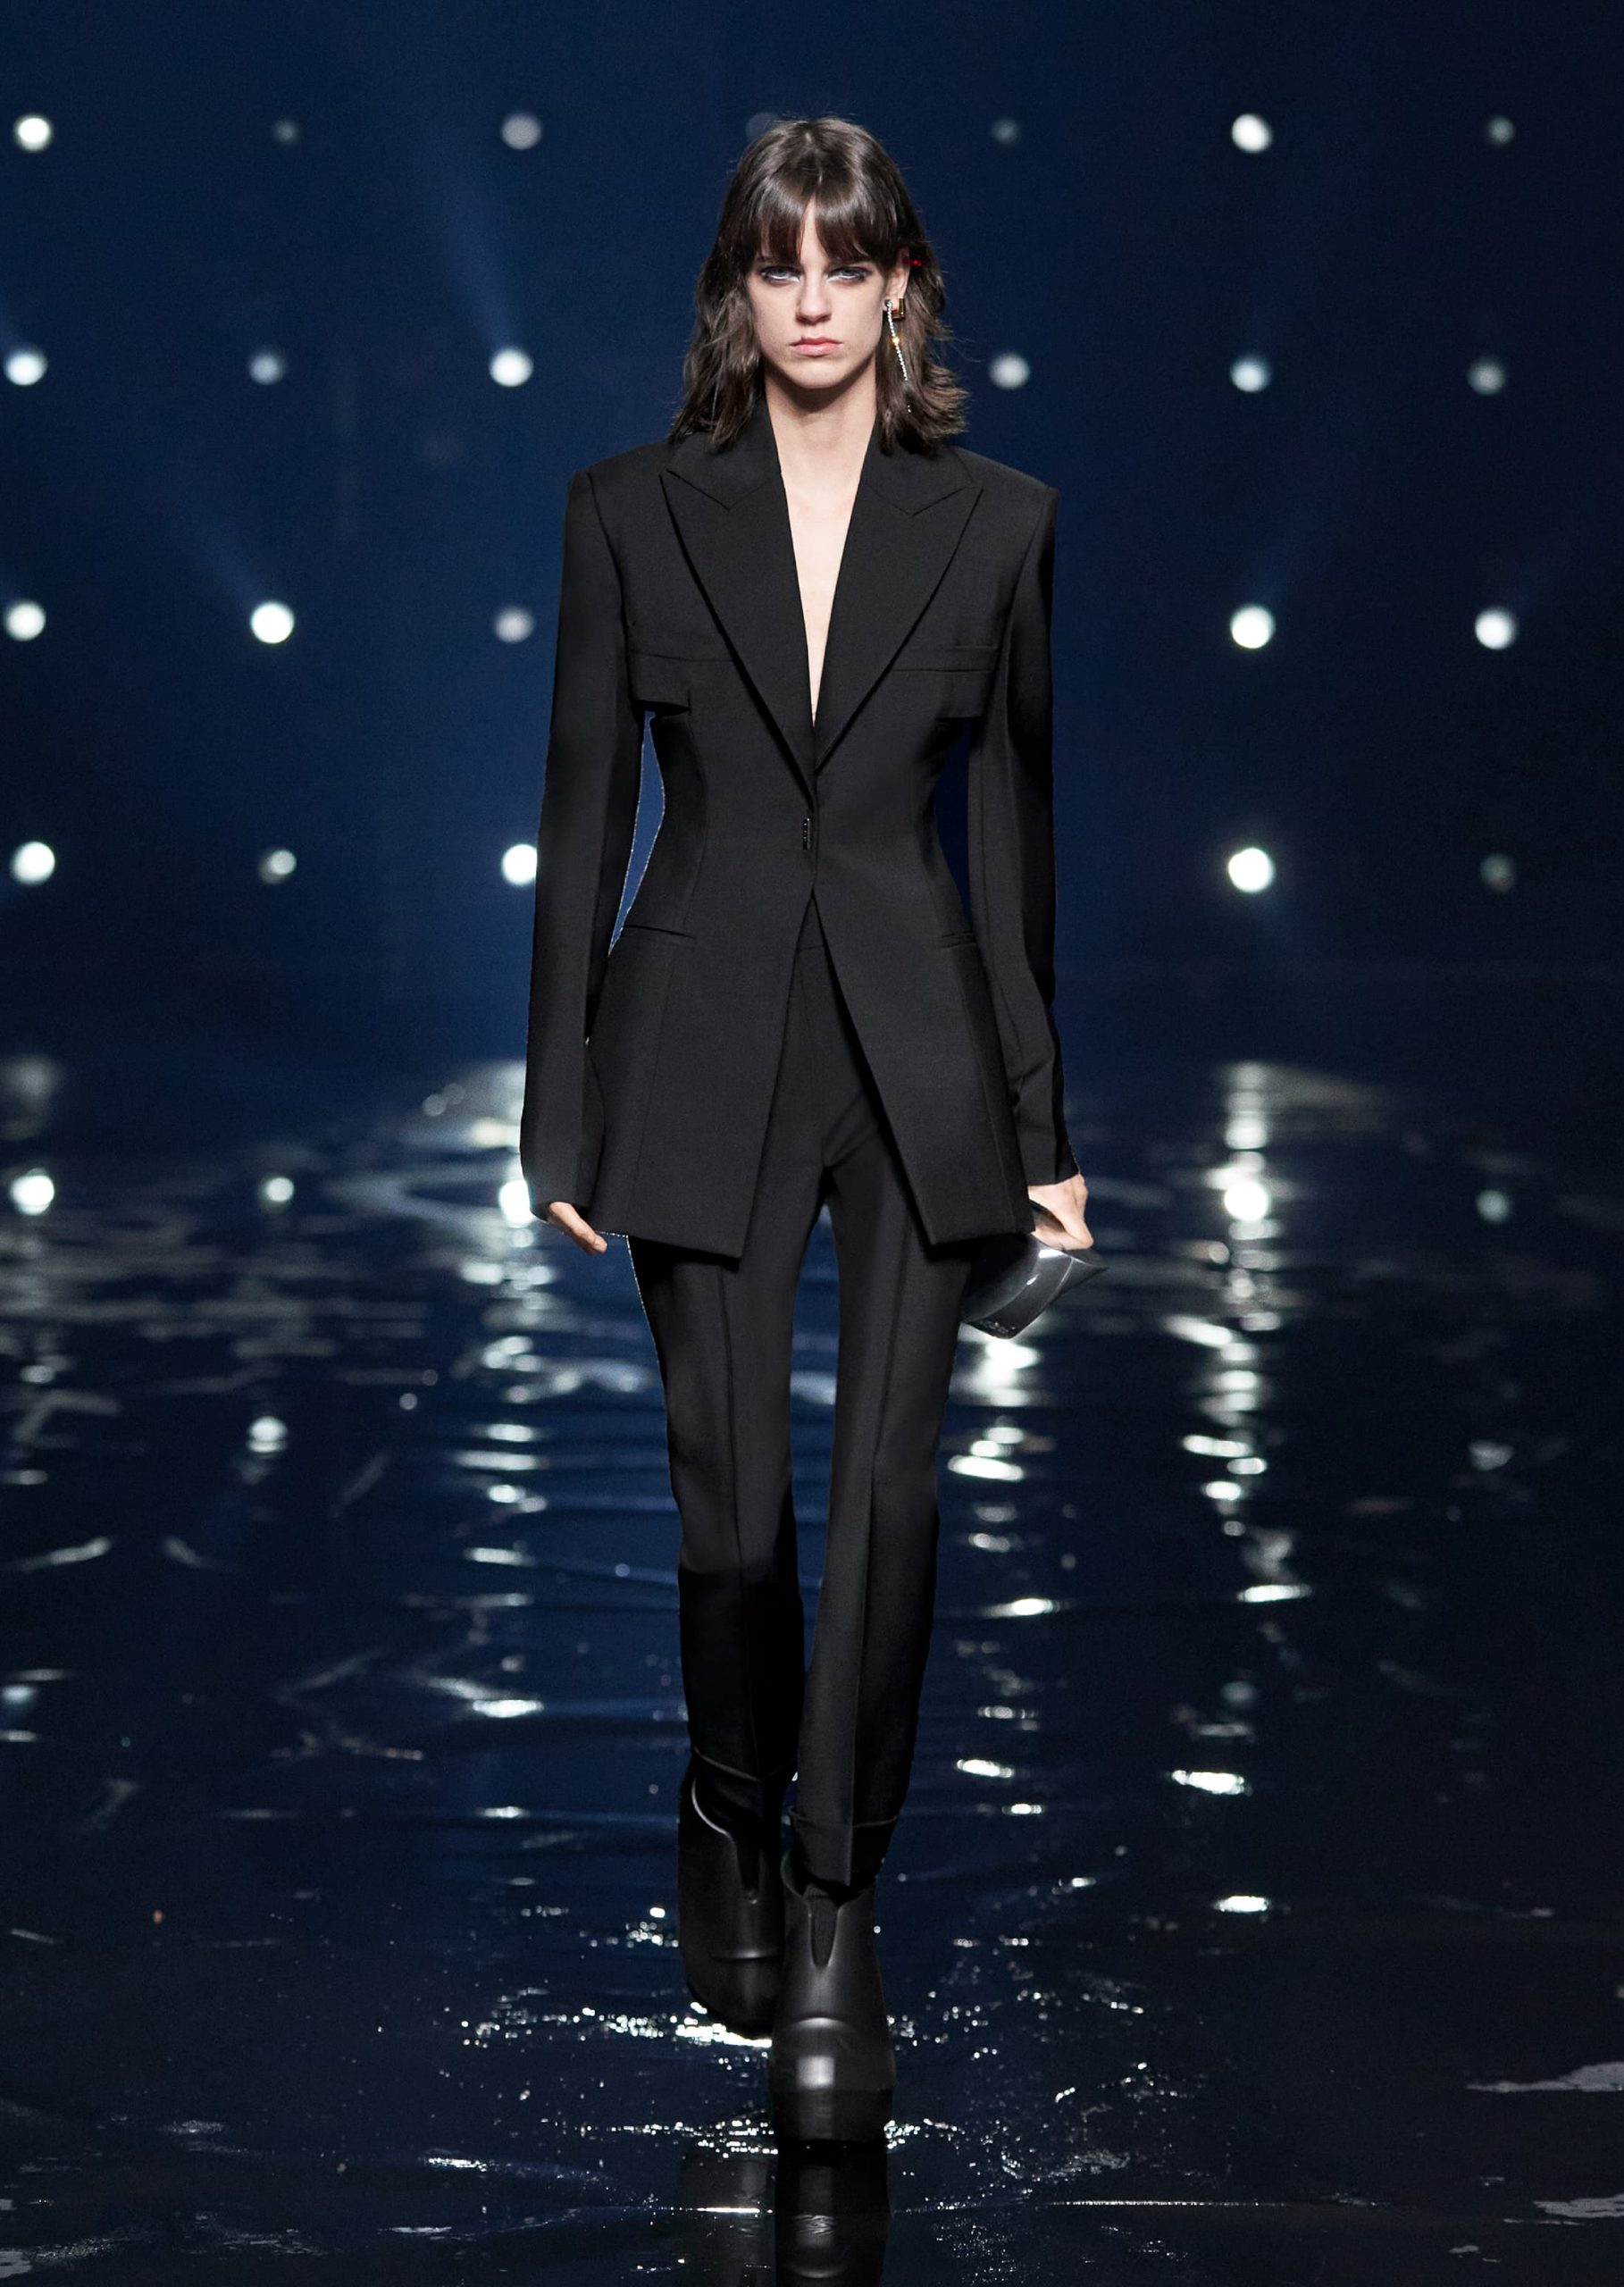 Givenchy Fall 2021 Fashion Show Review